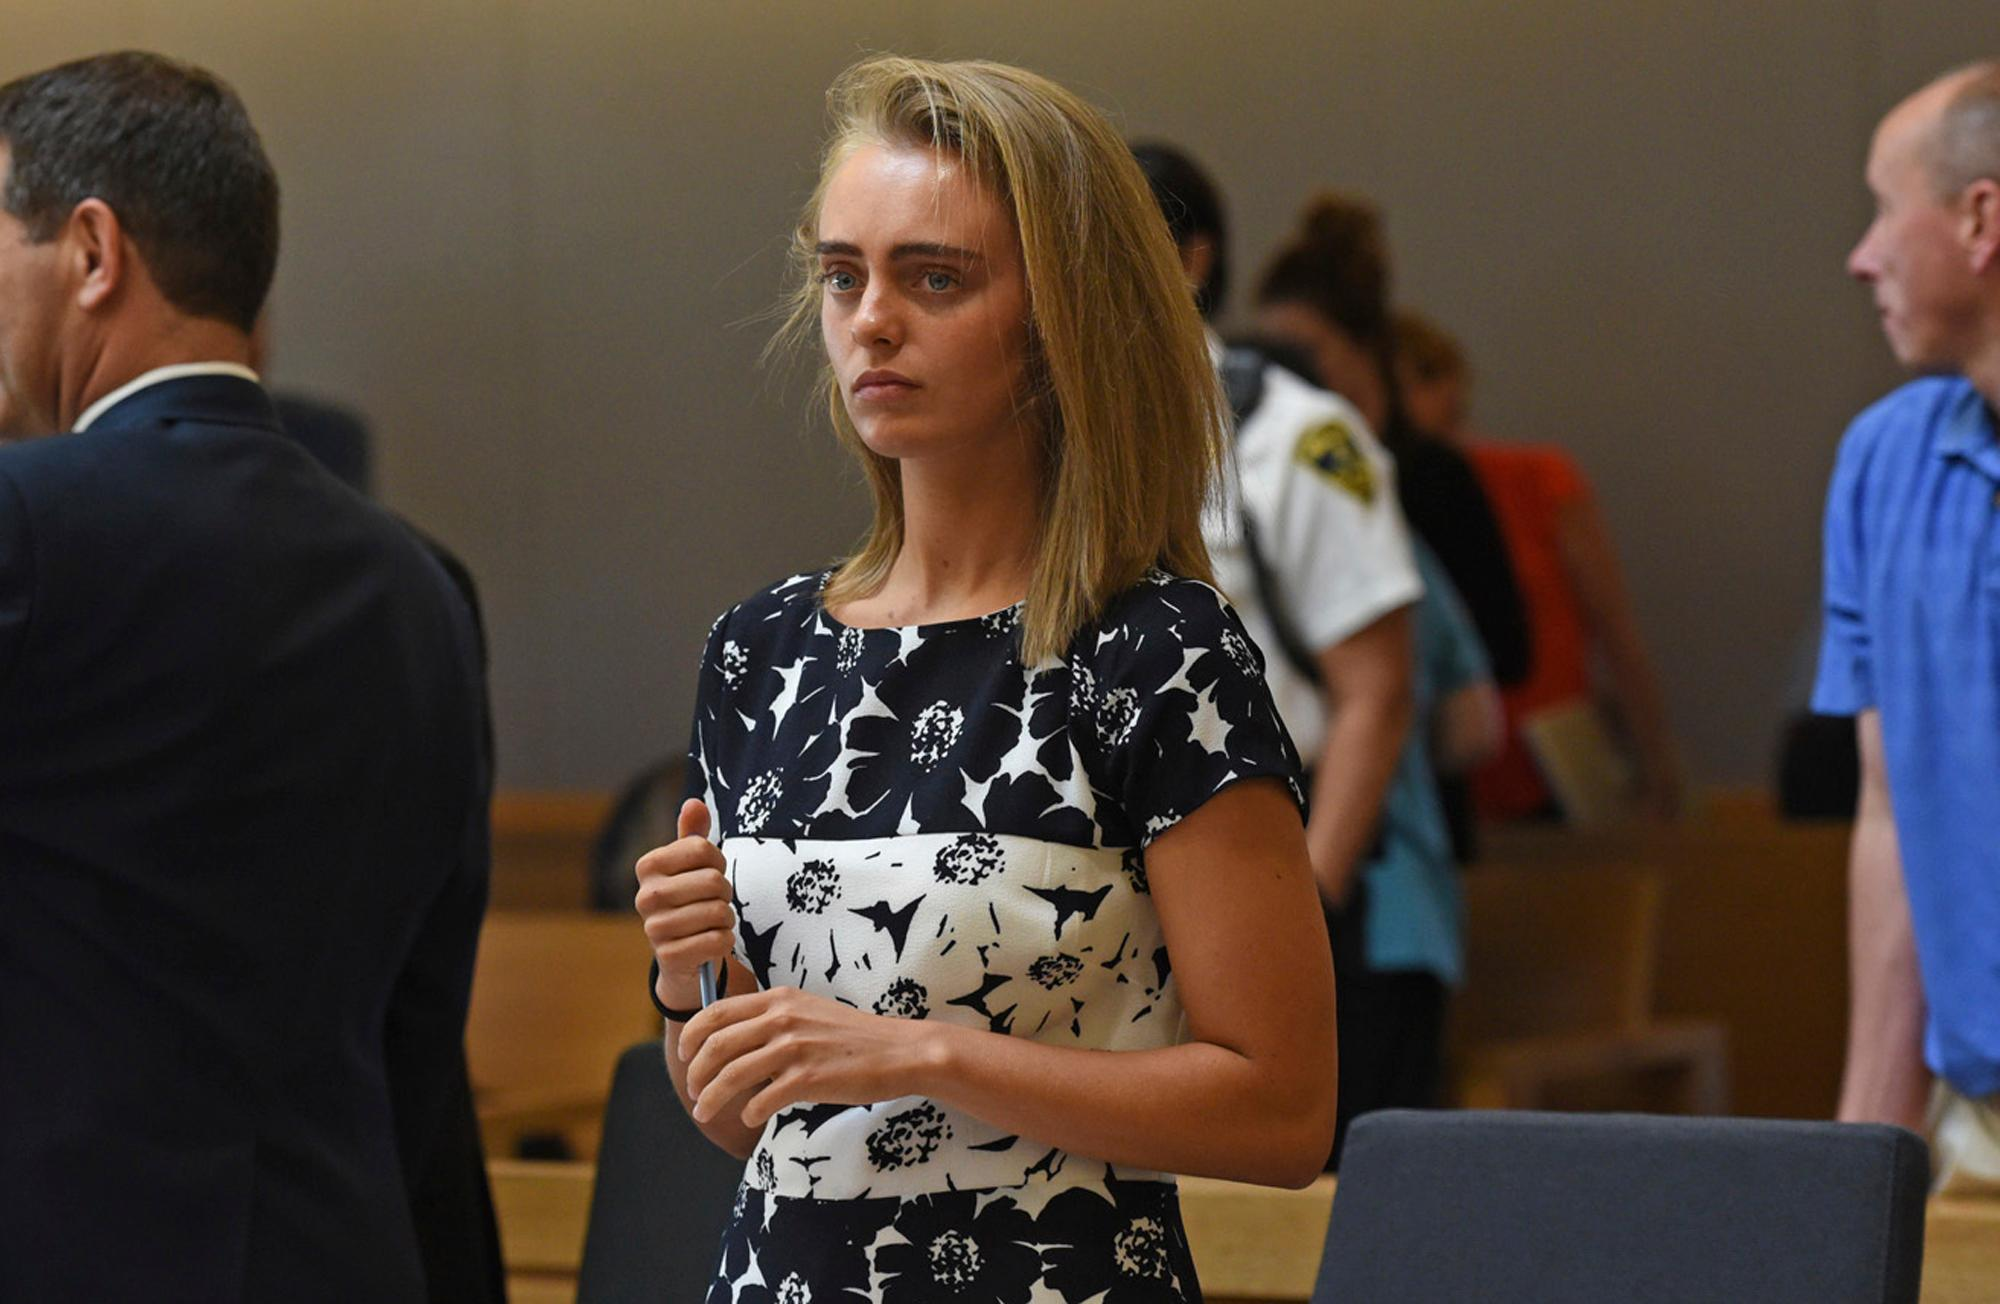 FILE - In this Monday, June 12, 2017 file photo, Michelle Carter stands as court is in recess at the end of the day at her trial in Taunton, Mass. Carter is charged with involuntary manslaughter for encouraging Conrad Roy III to kill himself in July 2014. The judge is set to issue a verdict in the case on Friday. (Faith Ninivaggi/The Boston Herald via AP, Pool, File)